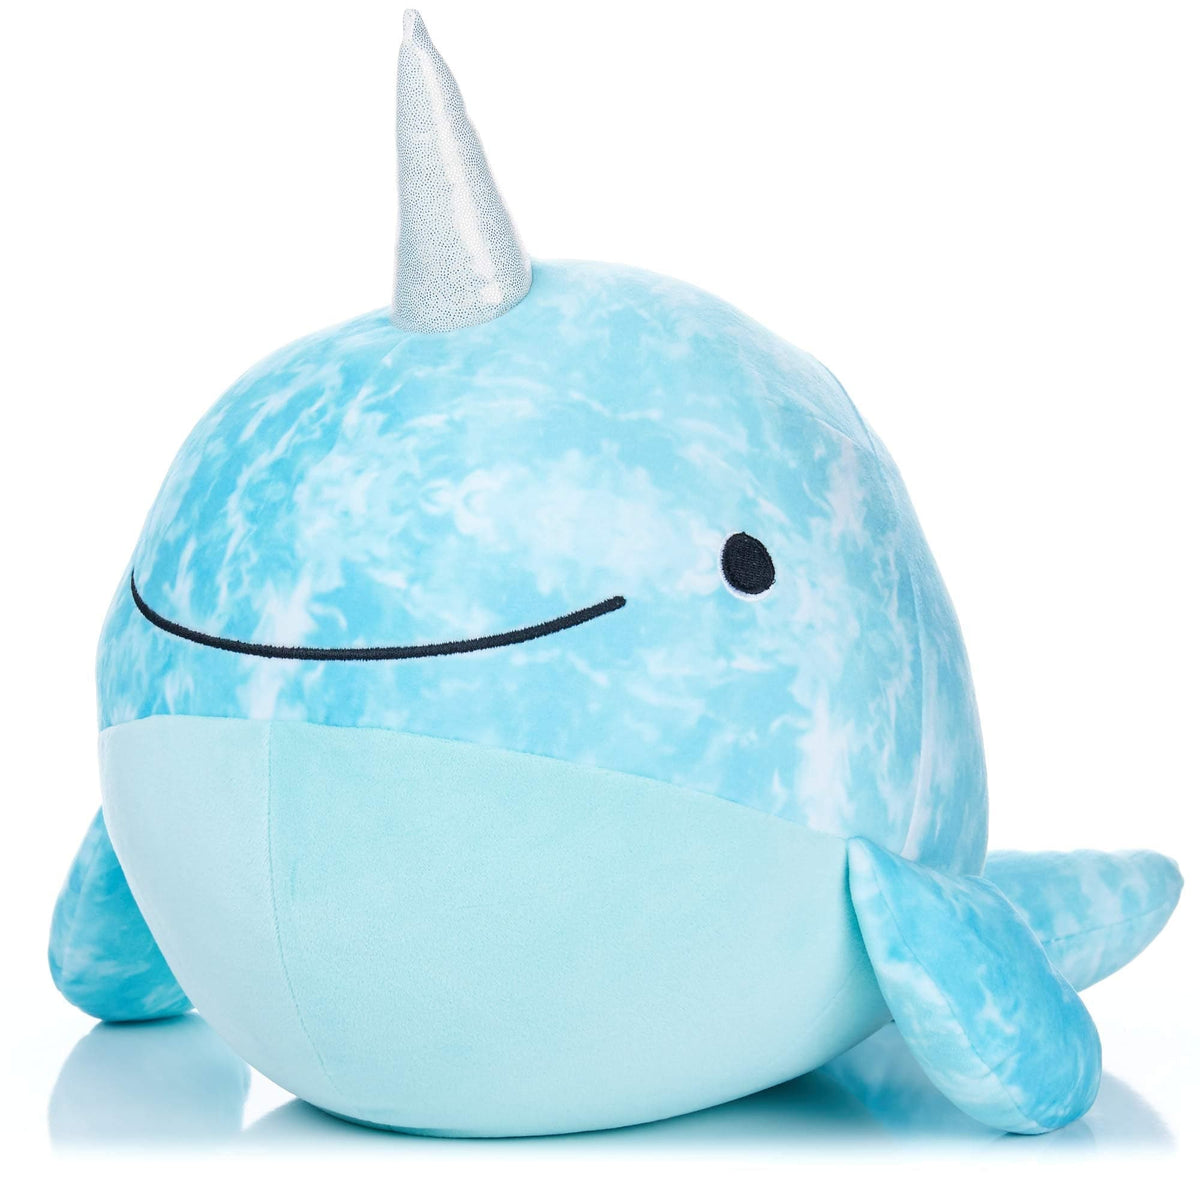 Kids Preferred Cuddle Pal - Round Huggable Indigo the Narwhal - Legacy Toys